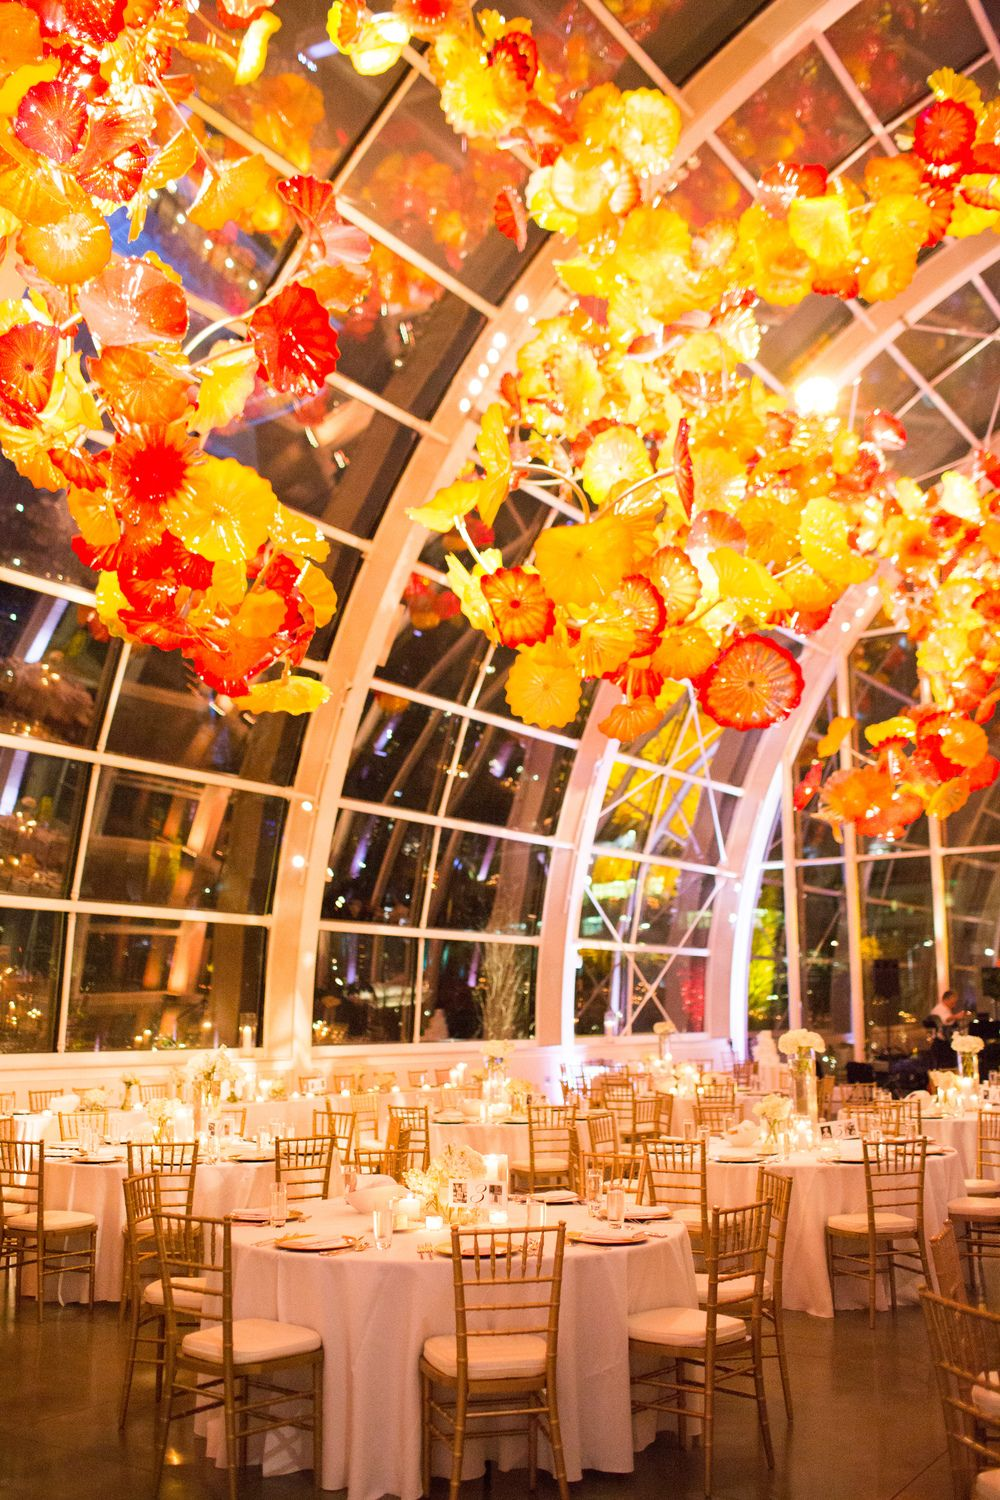 Chihuly Glass And Garden Wedding Seattle Wedding Venue New Creations Wedding Design And Co Seattle Wedding Venues Washington Wedding Venues Seattle Wedding